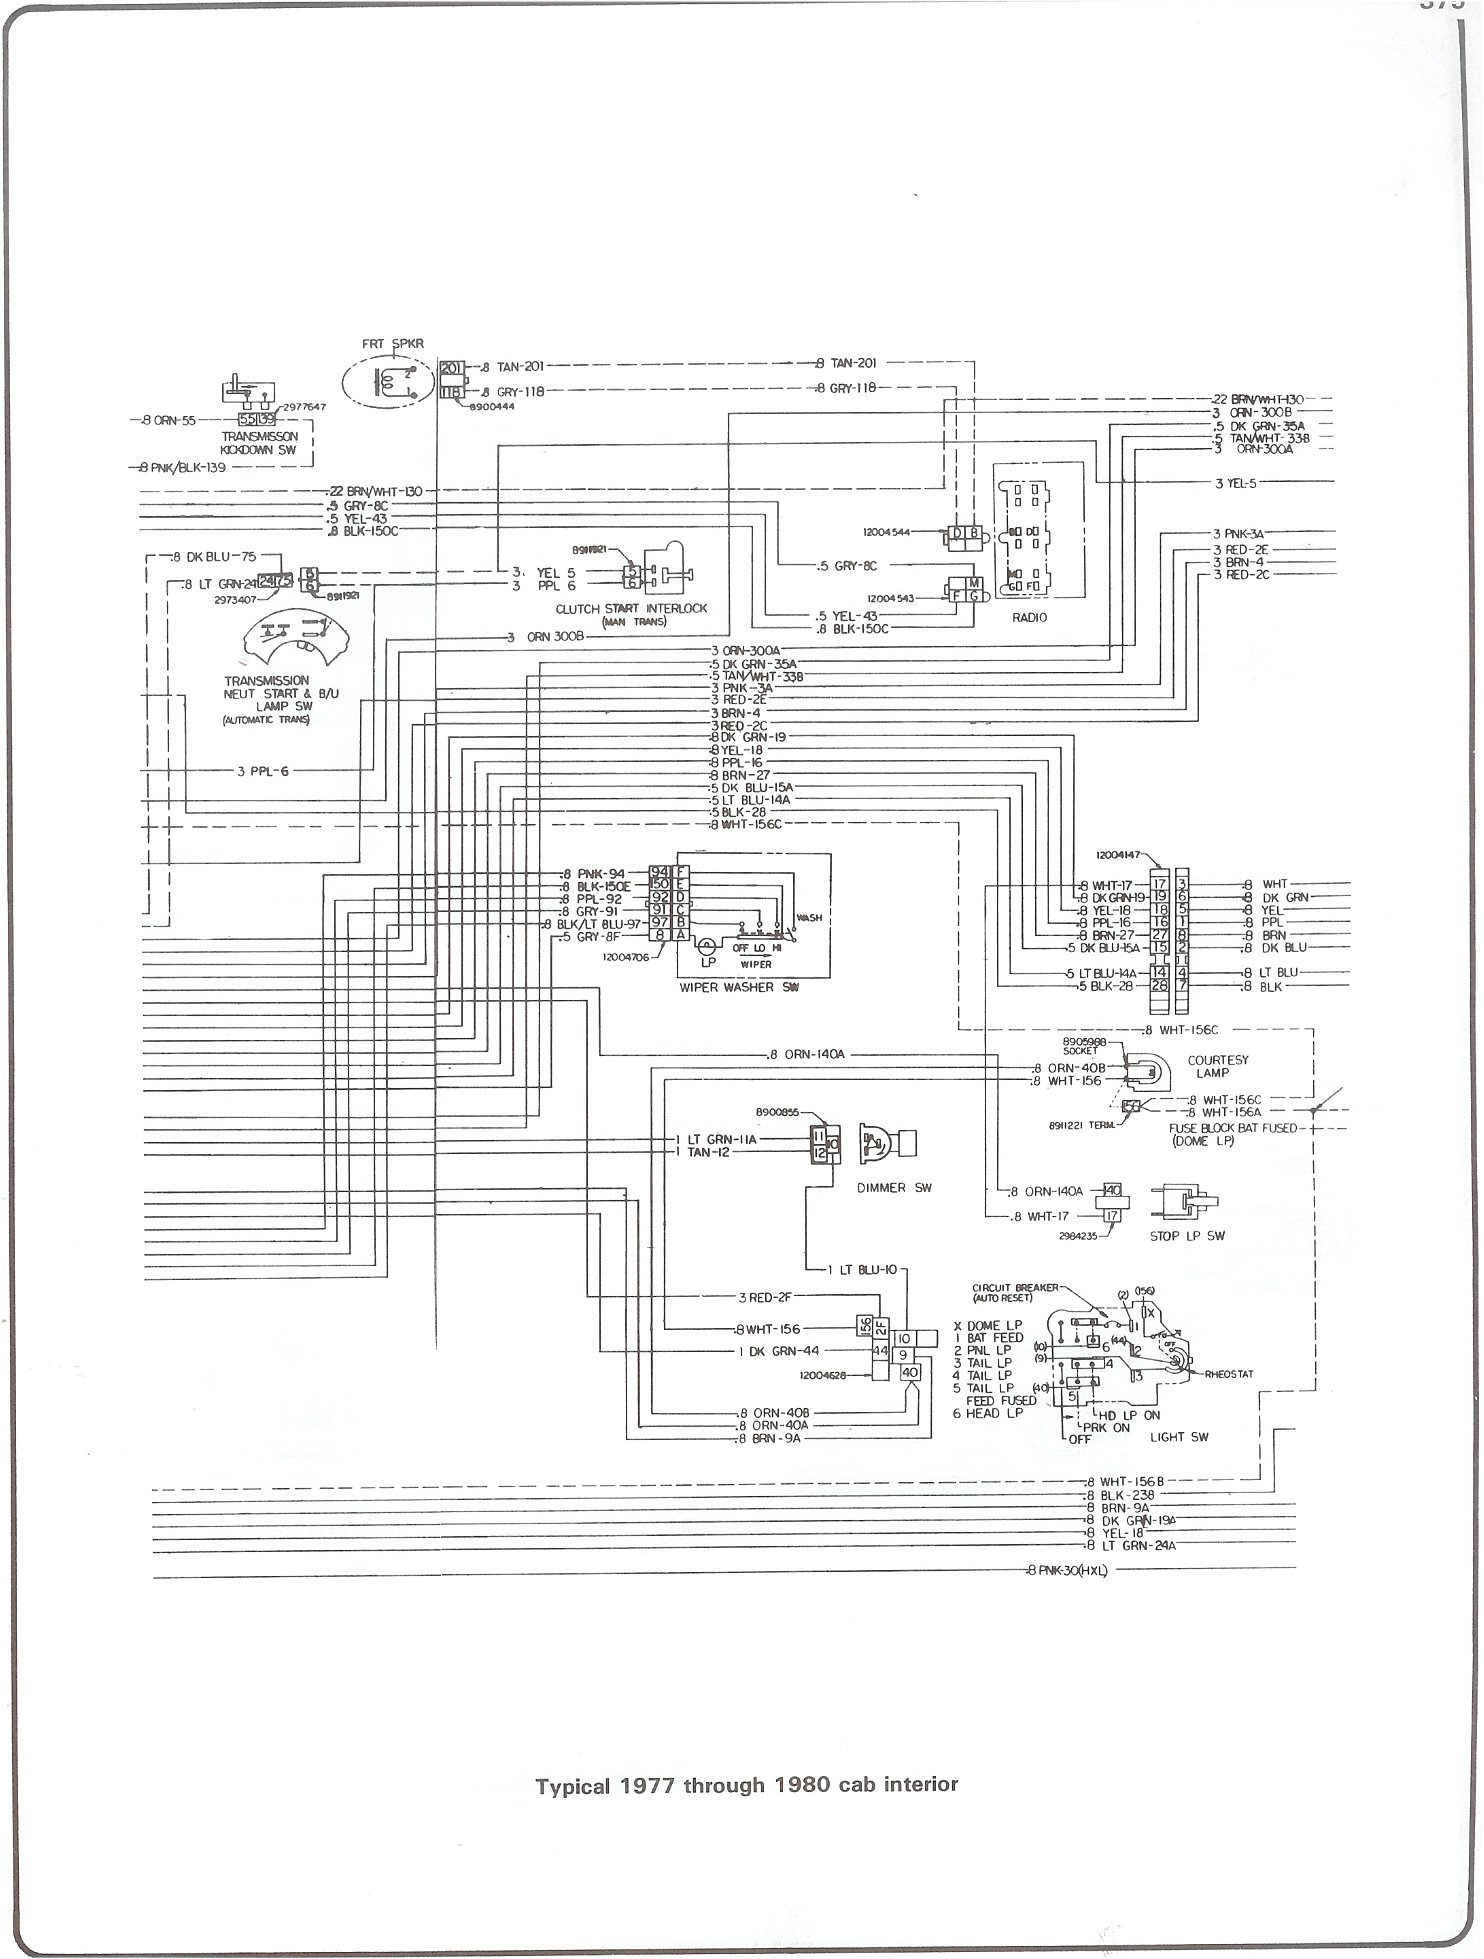 [WRG-2228] 80 Chevy Wiring Diagram